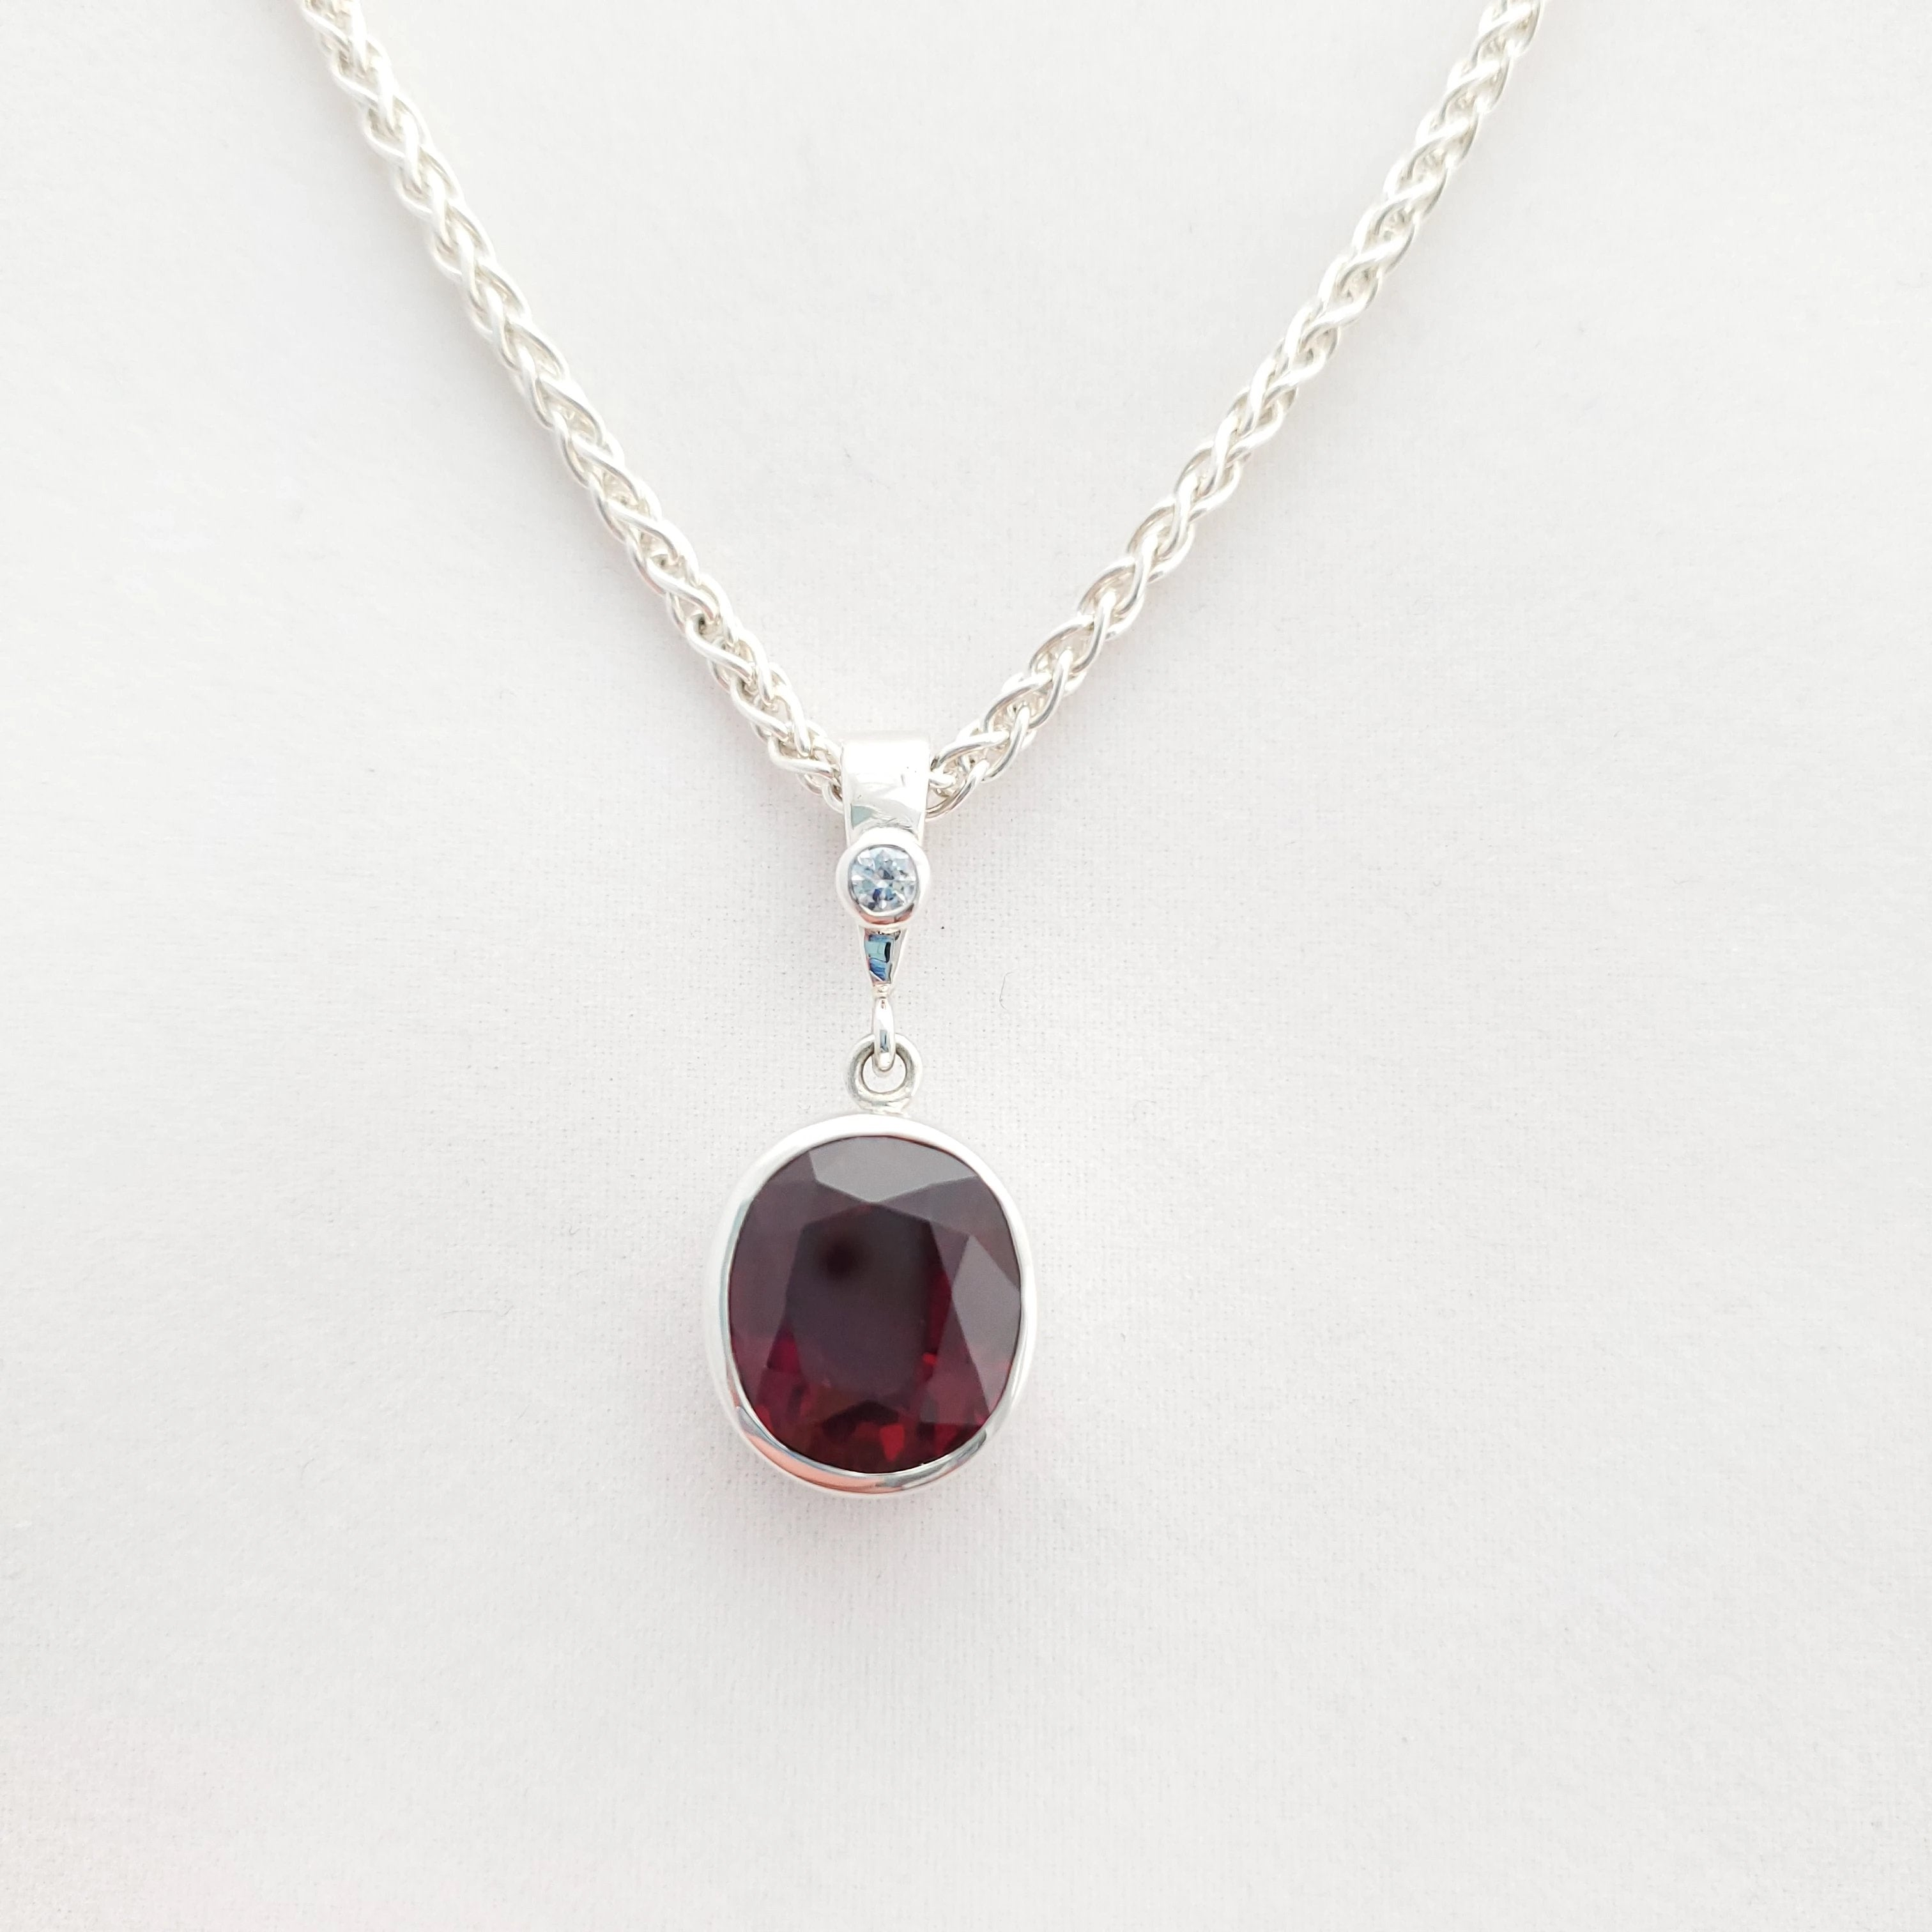 Close up view of faceted dark purple-red garnet bezel set necklace with cz accent